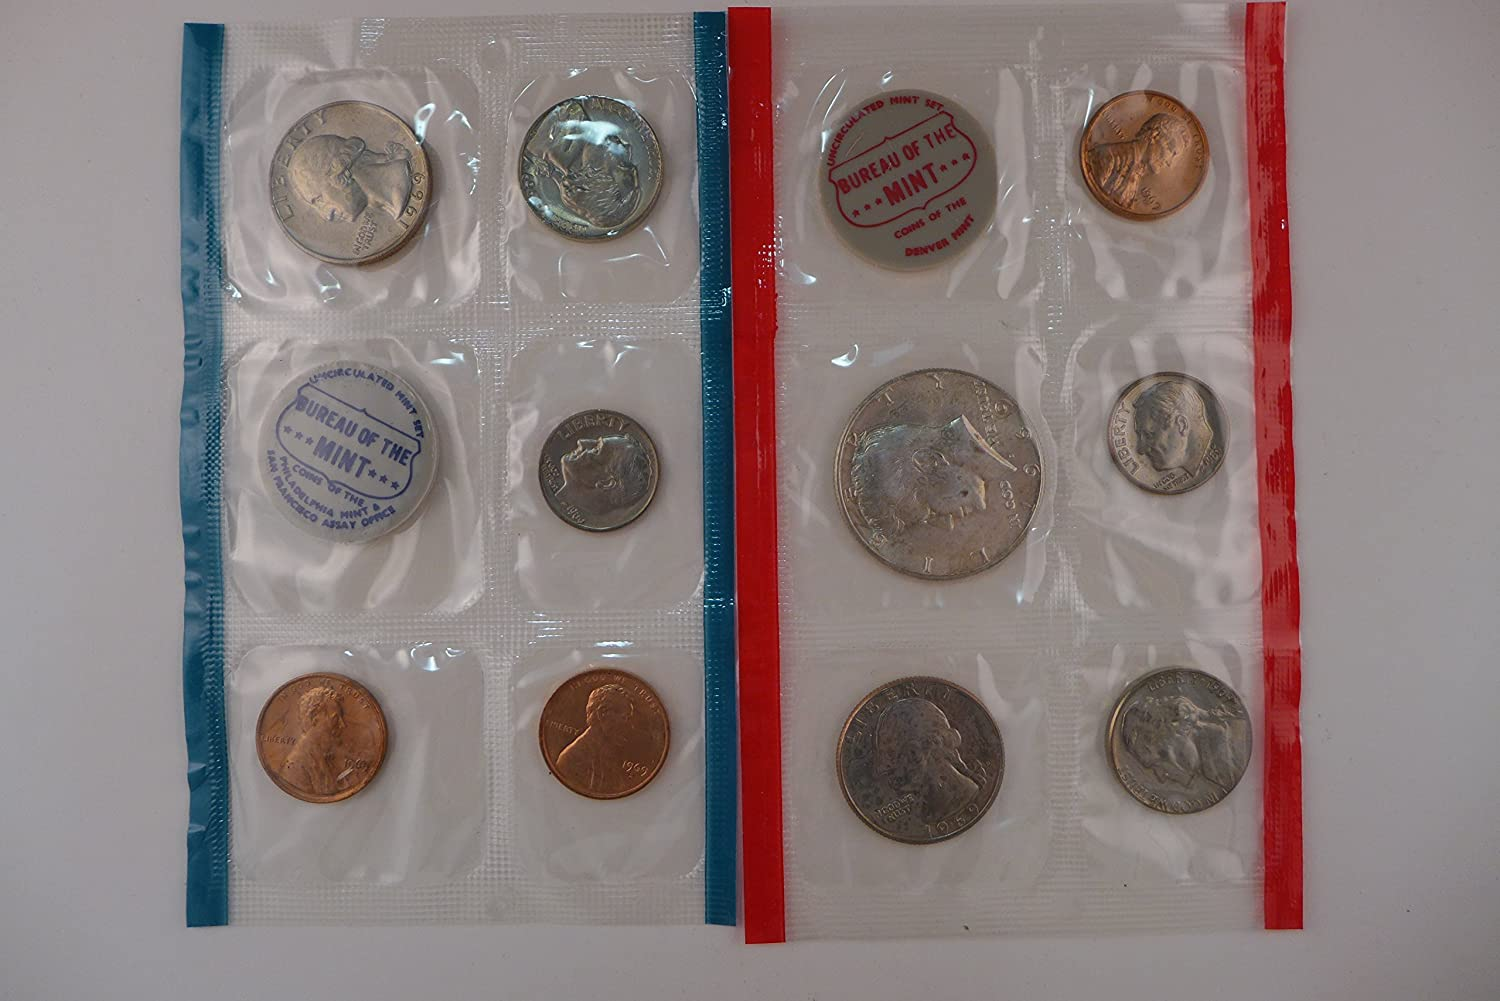 1969 United States Mint Uncirculated Coin Set